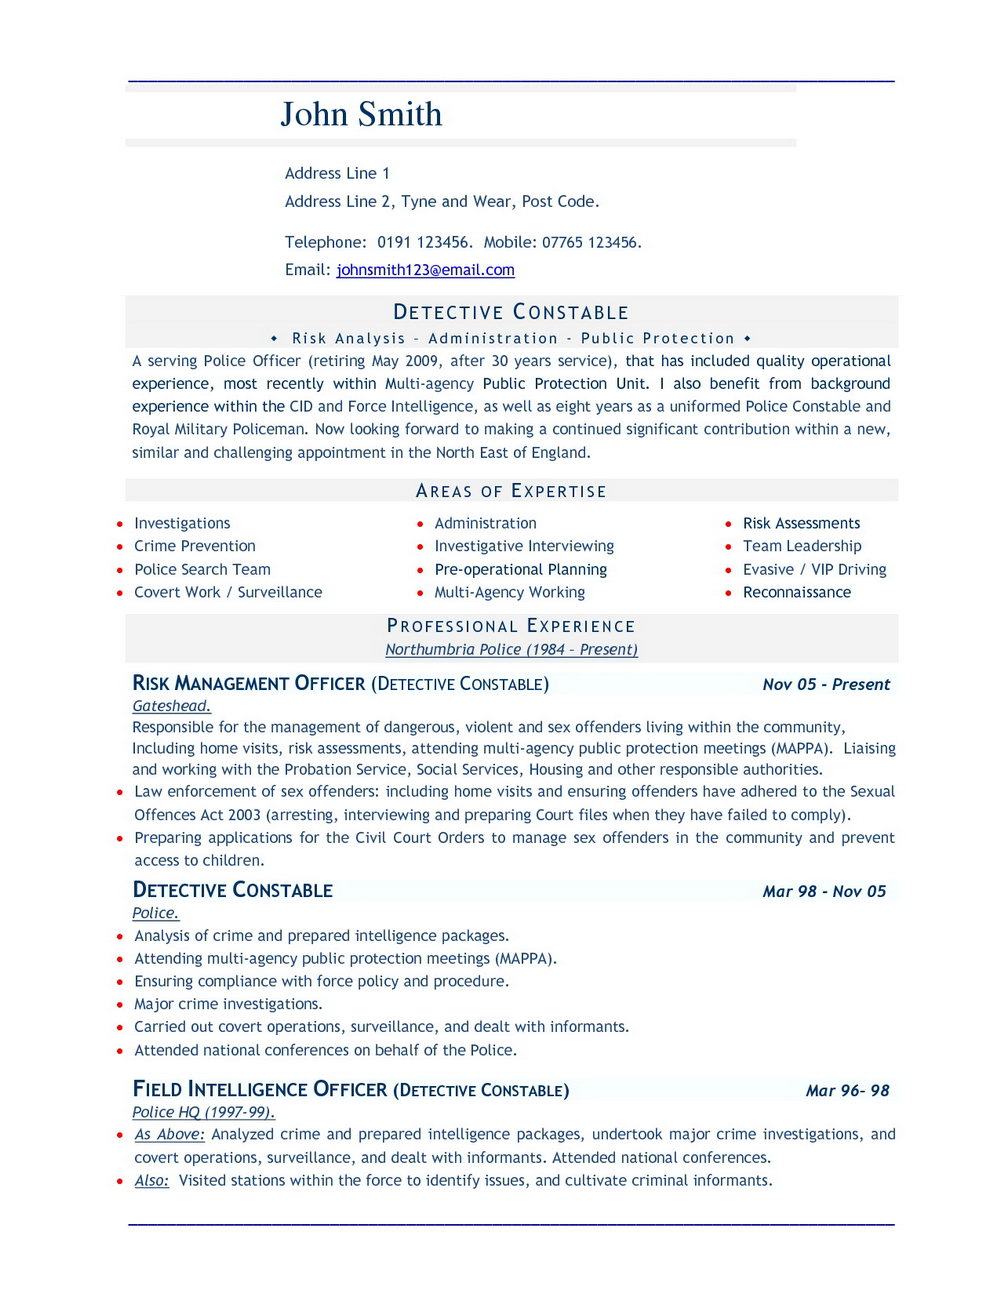 Resume Format Free Download For Freshers